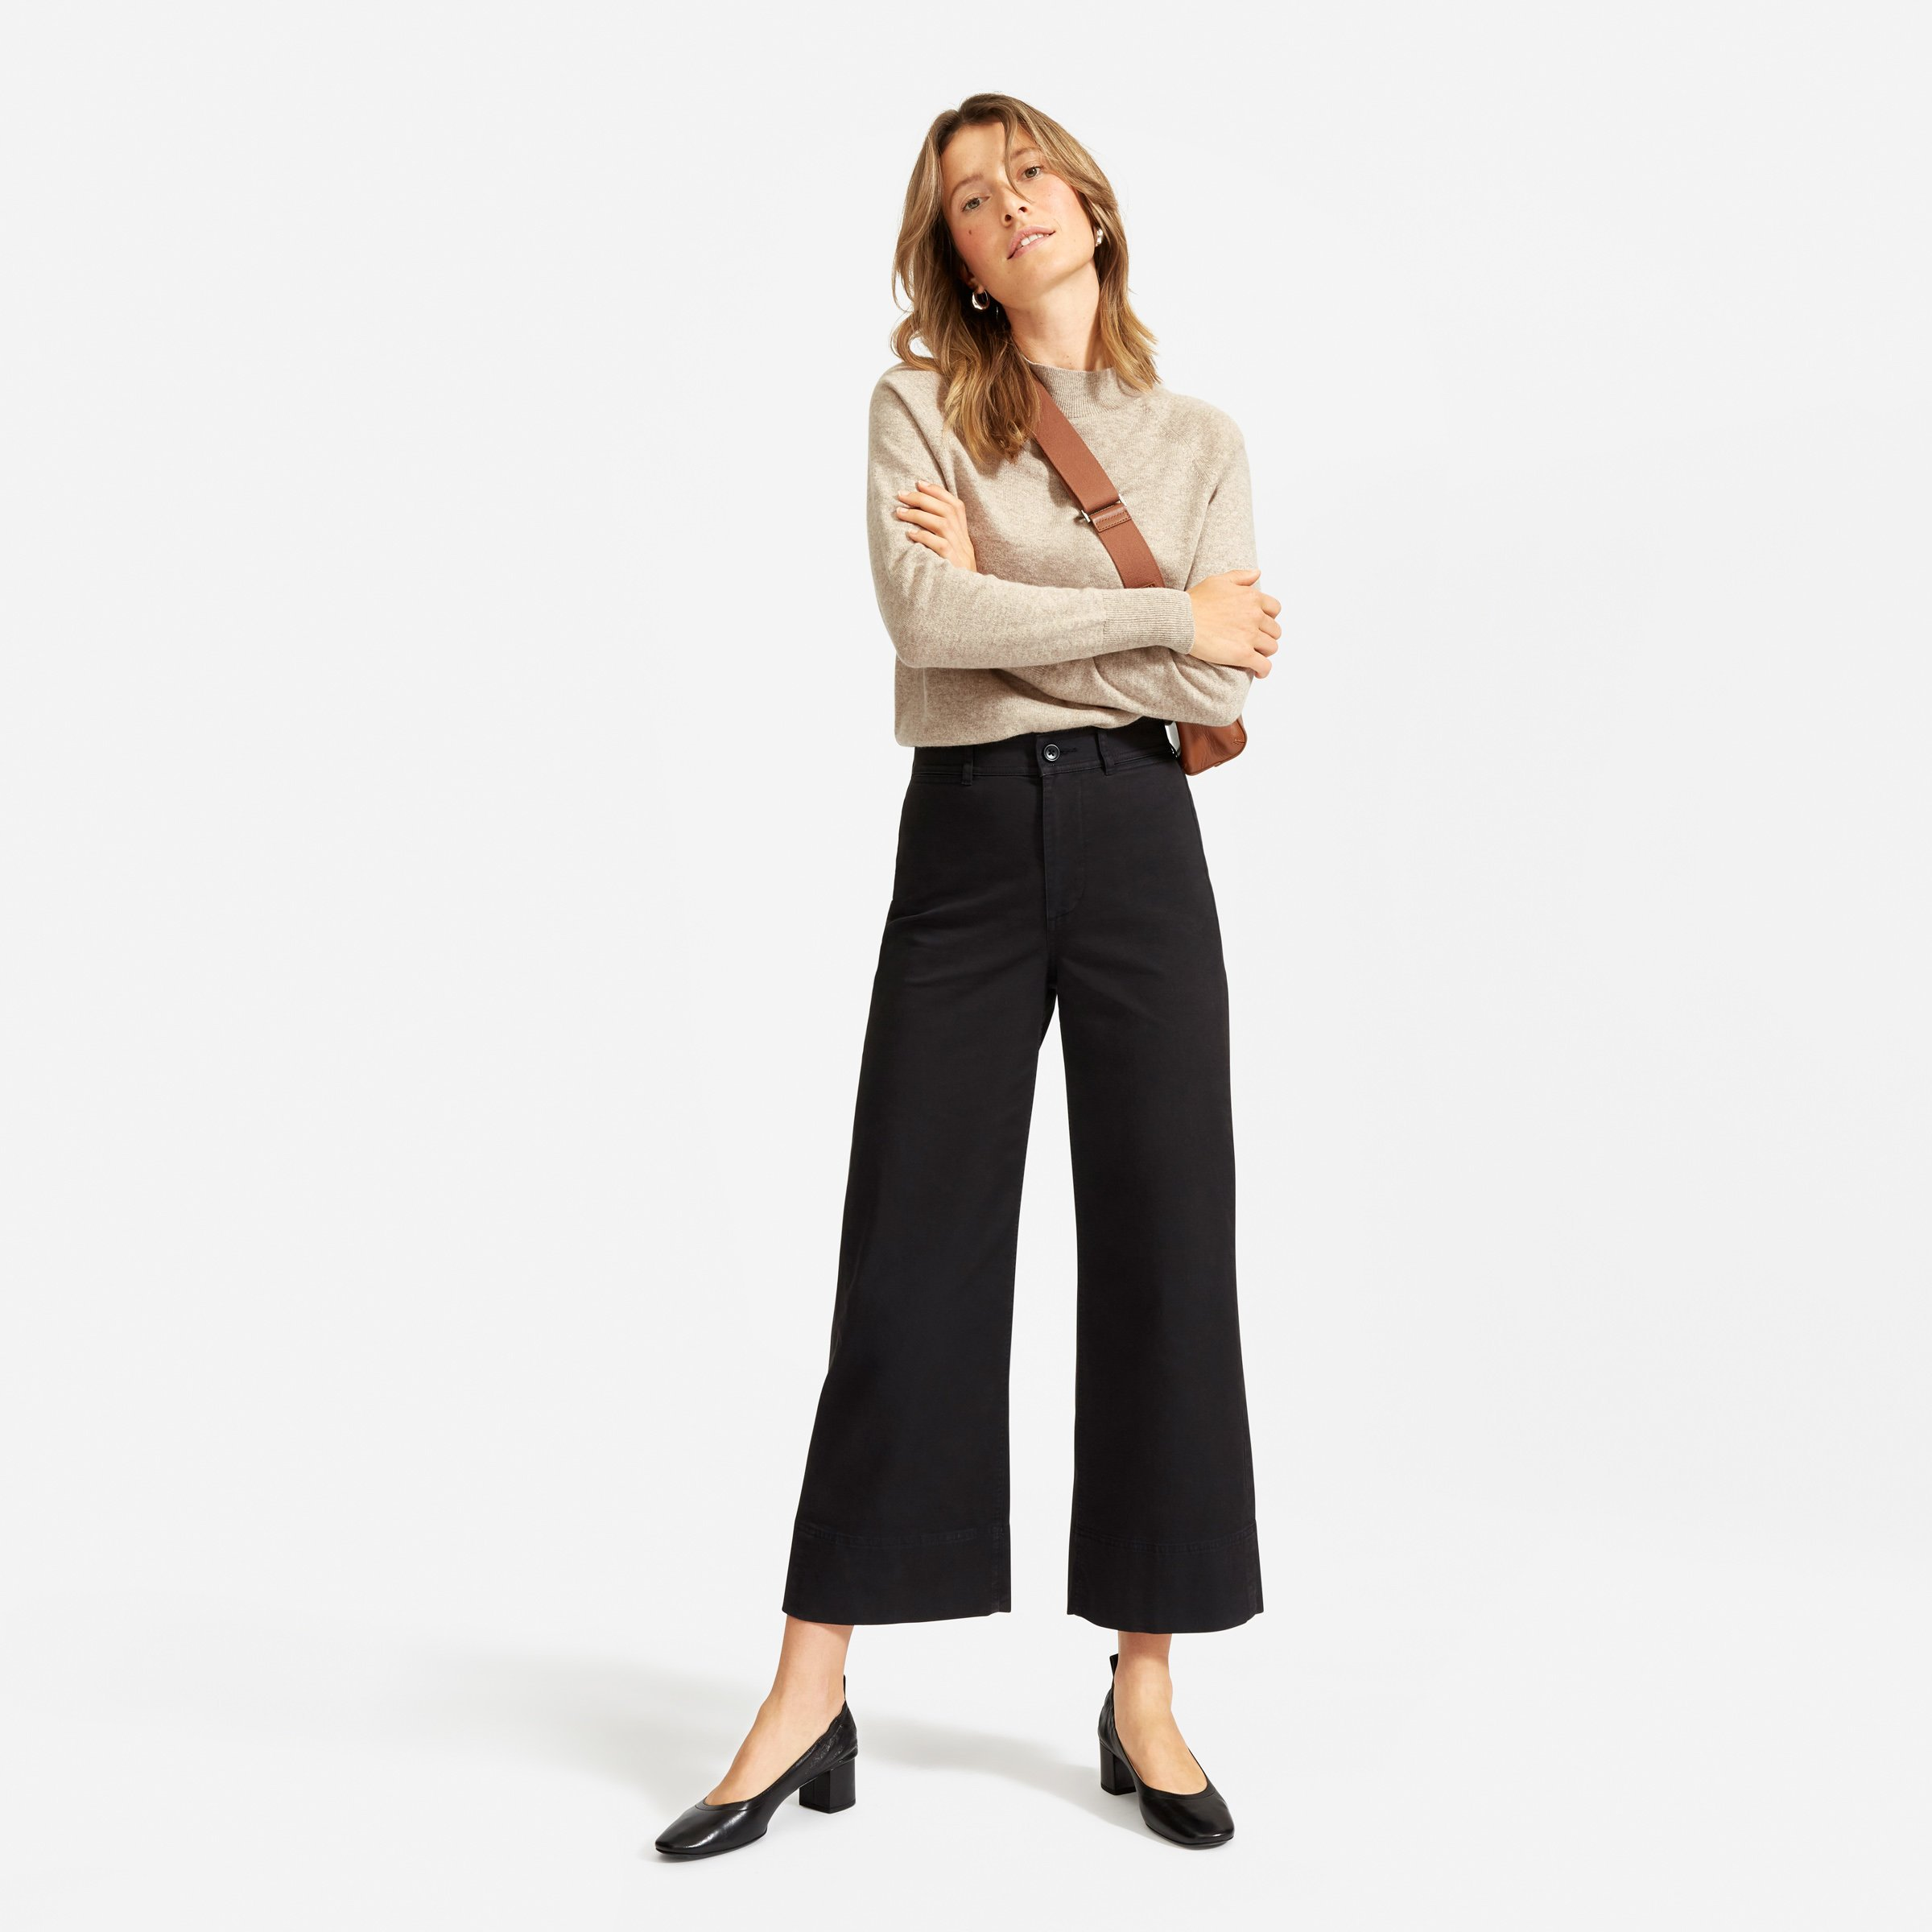 everlane mockneck sweater